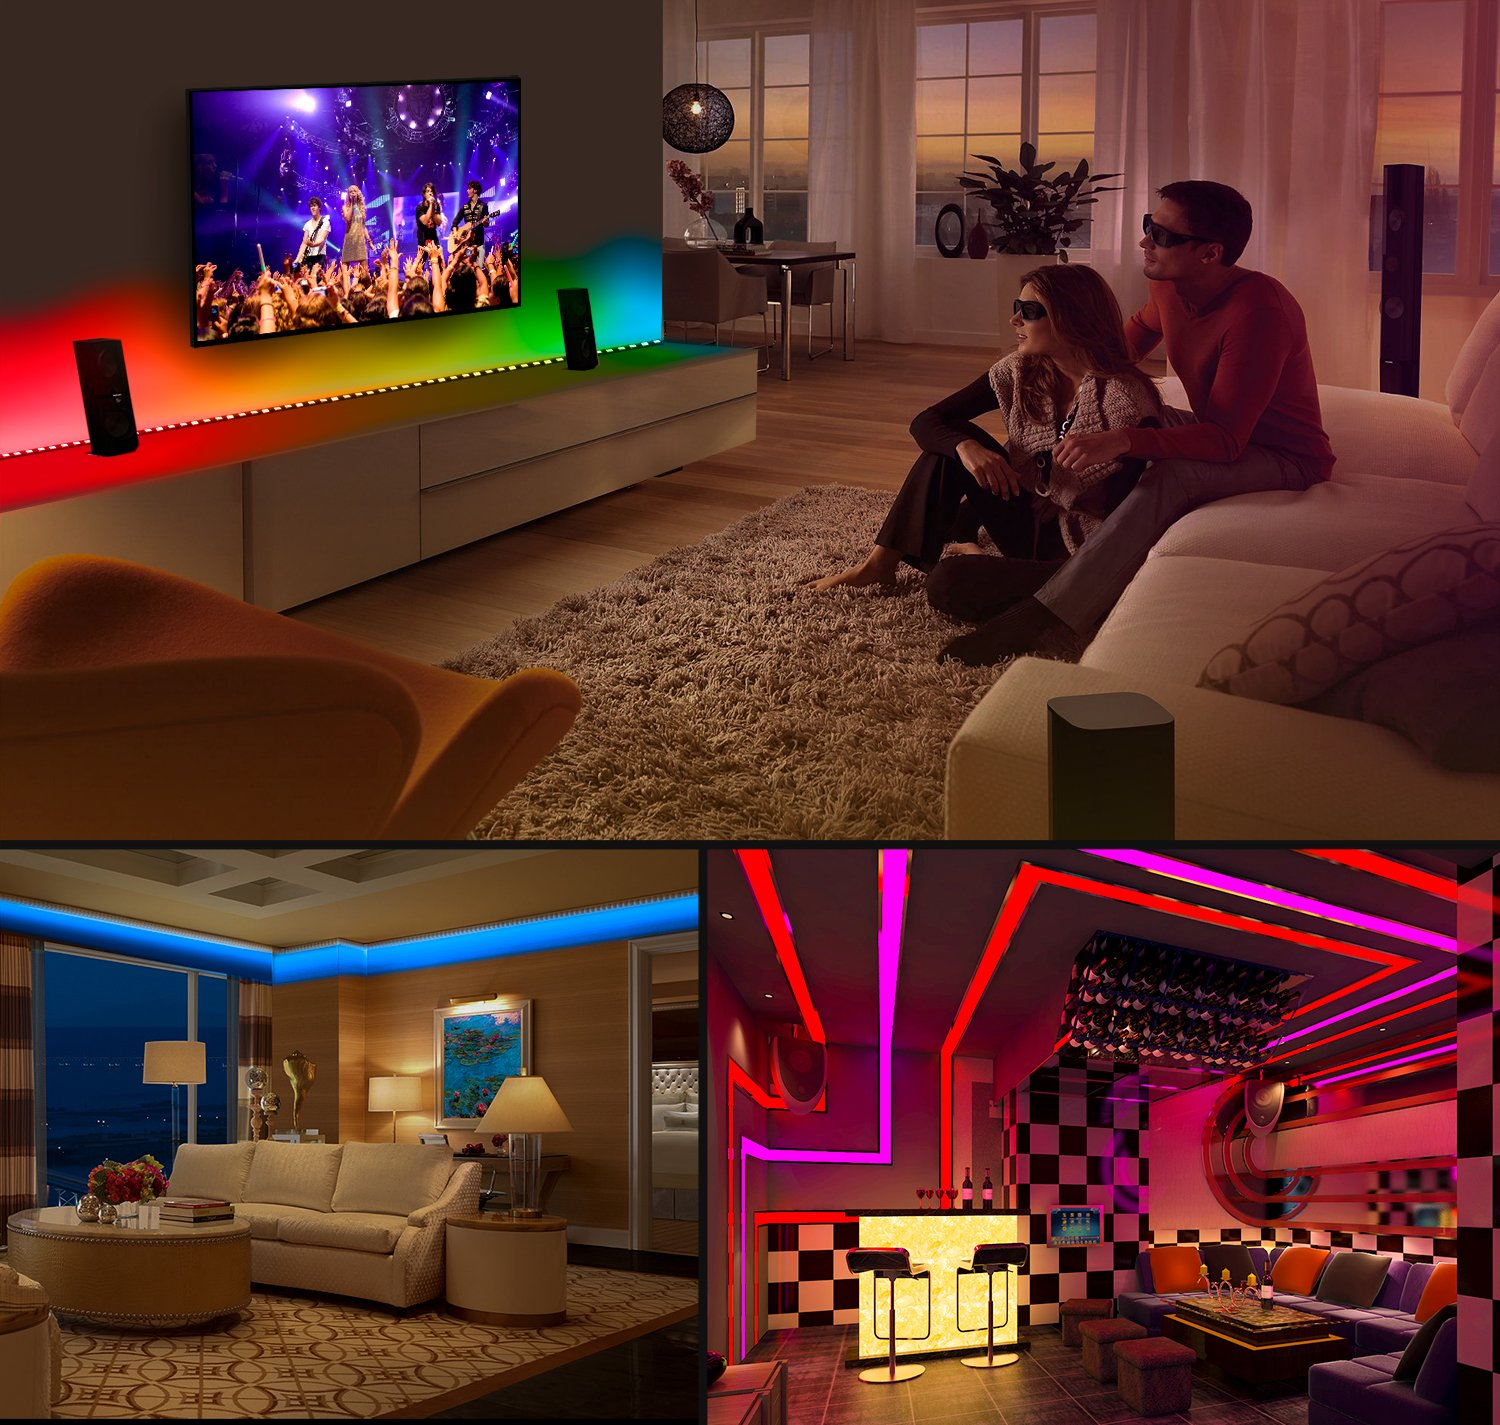 MINGER DreamColor LED Strip Lights, Smart Music Sync Light Strip Phone App Controlled Waterproof for Room, Bedroom, TV, Gaming, Party with Brighter 5050 LEDs and Strong Adhesive Tape (16.4Ft) by MINGER (Image #7)